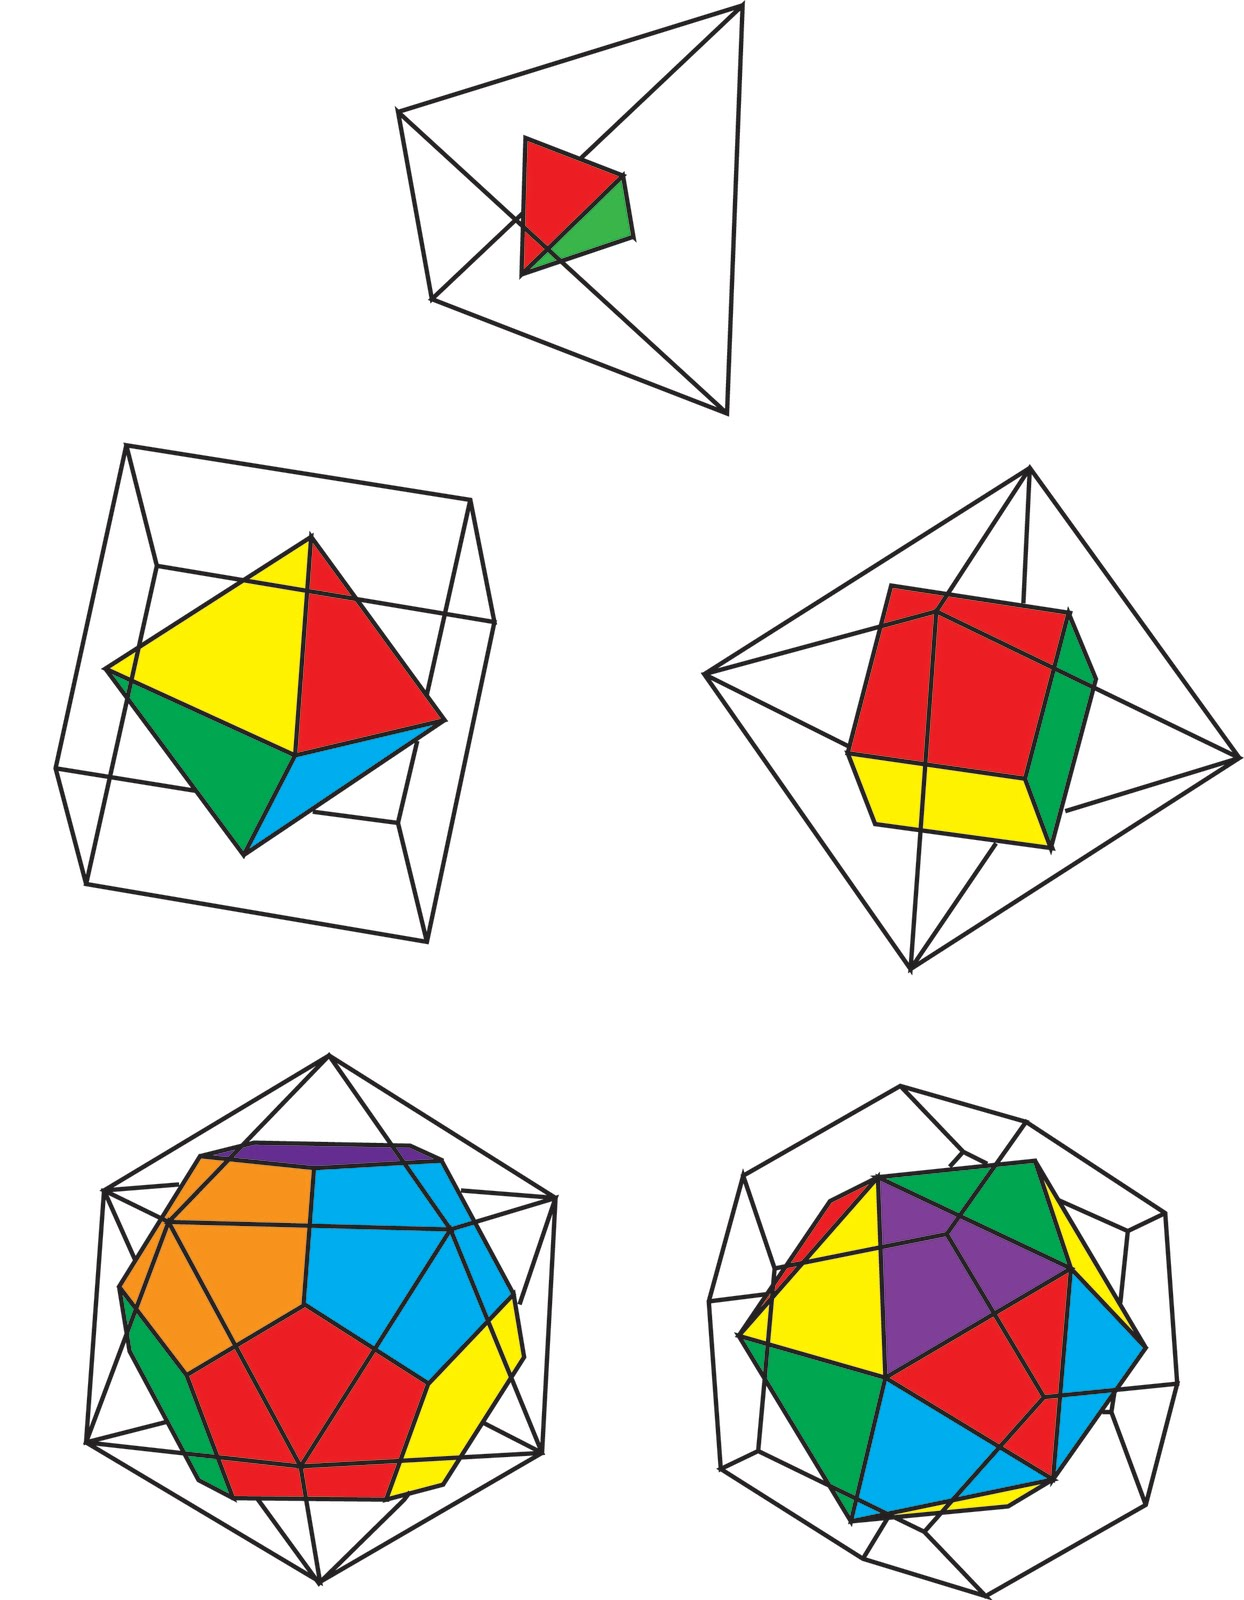 Fun with Mathematics  The art and science of Platonic solidsPlatonic Solids Art